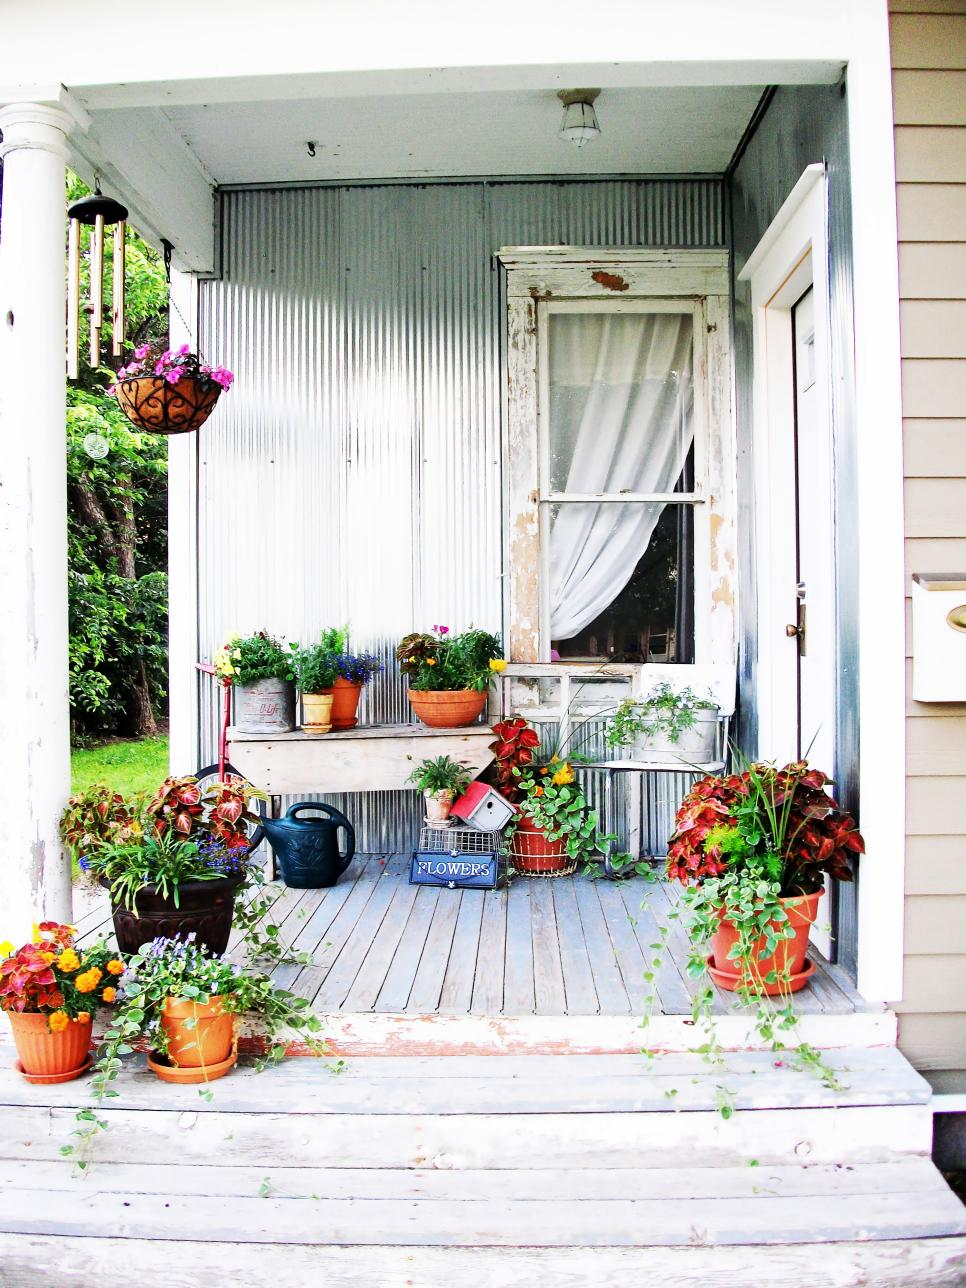 Shabby chic decorating ideas for porches and gardens hgtv Cottage porch decorating ideas